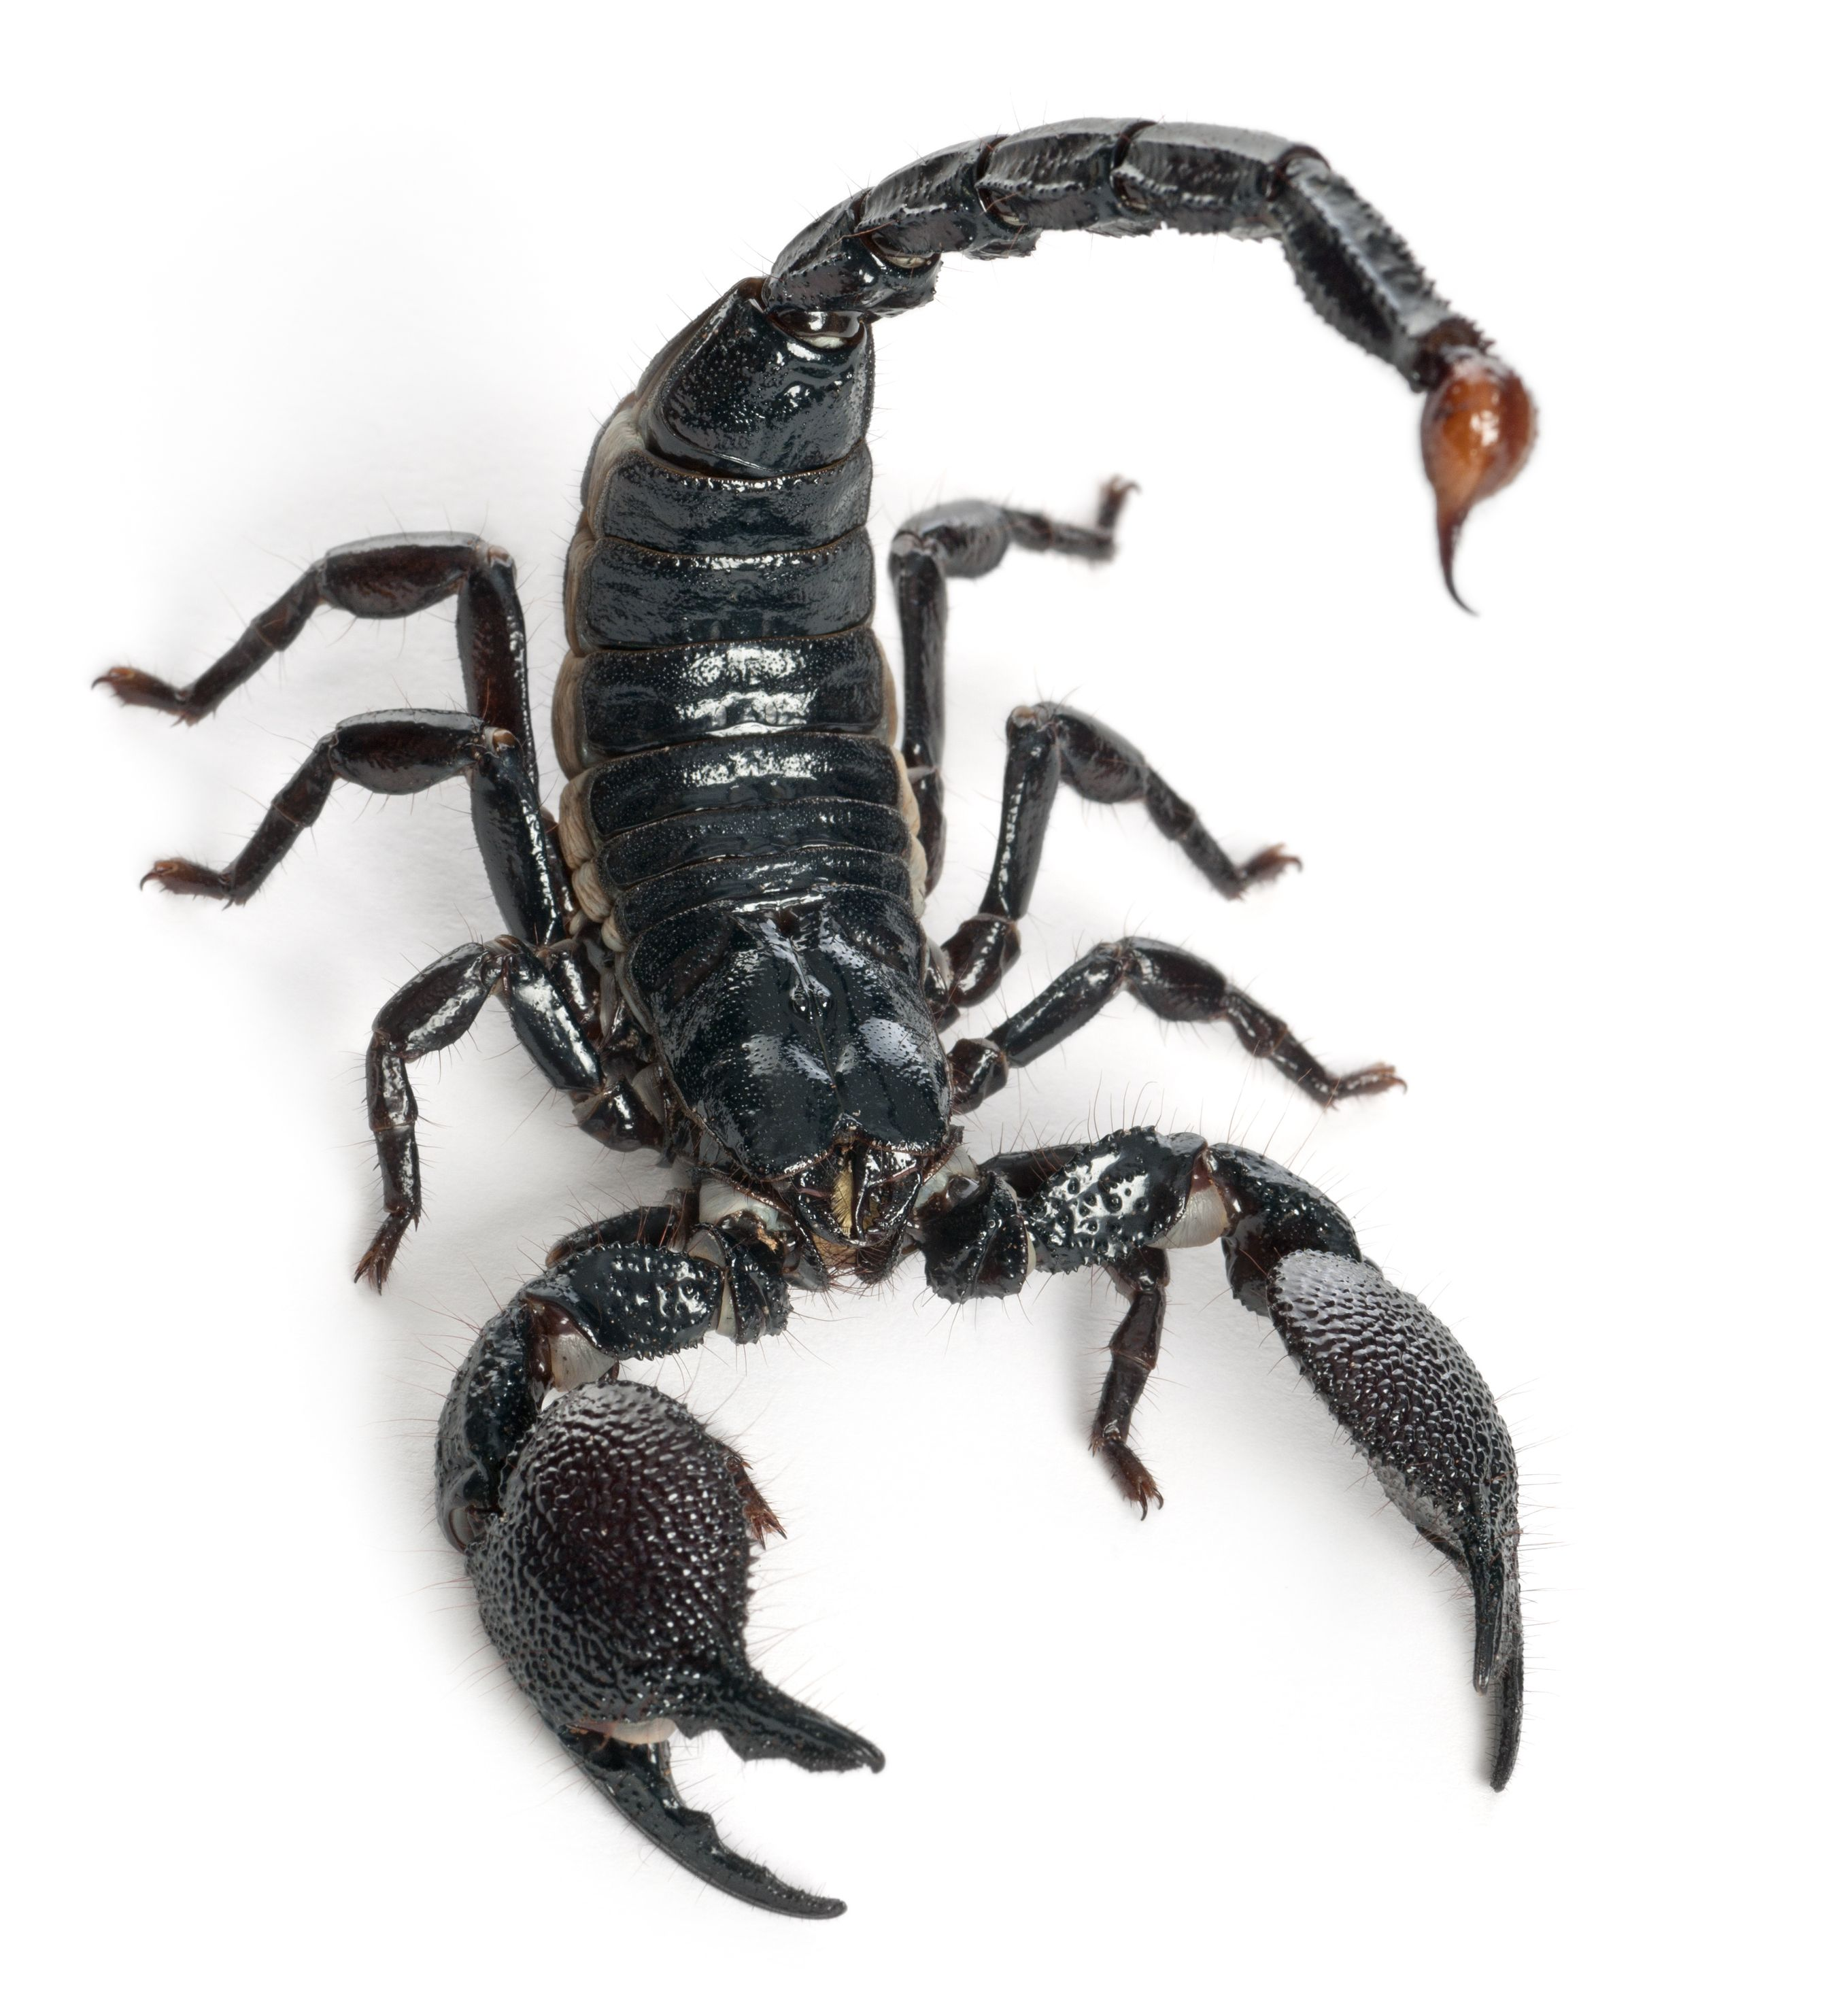 dreamstime_xl_21062237.jpg (2697×2965) | e | Pinterest | Scorpion ...